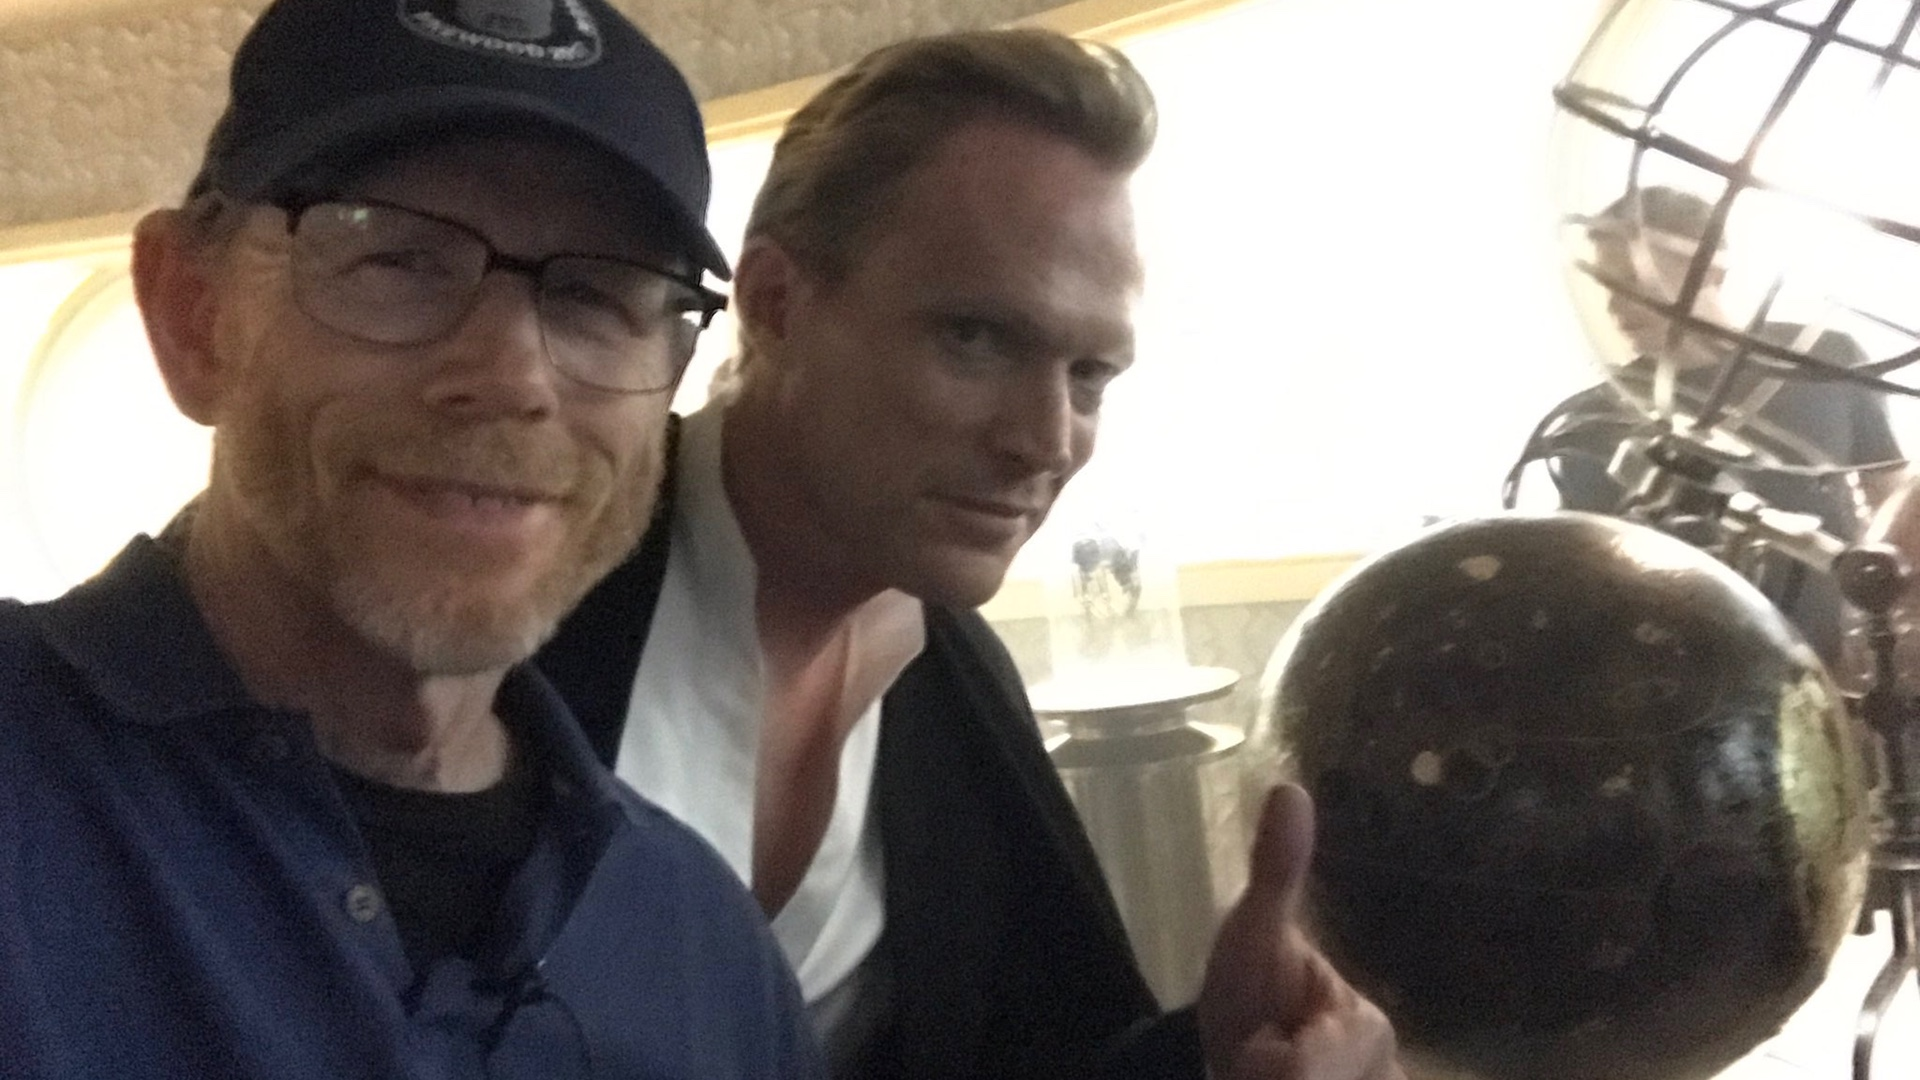 paul-bettany-has-joined-the-cast-of-ron-howards-han-solo-movie-social.jpg